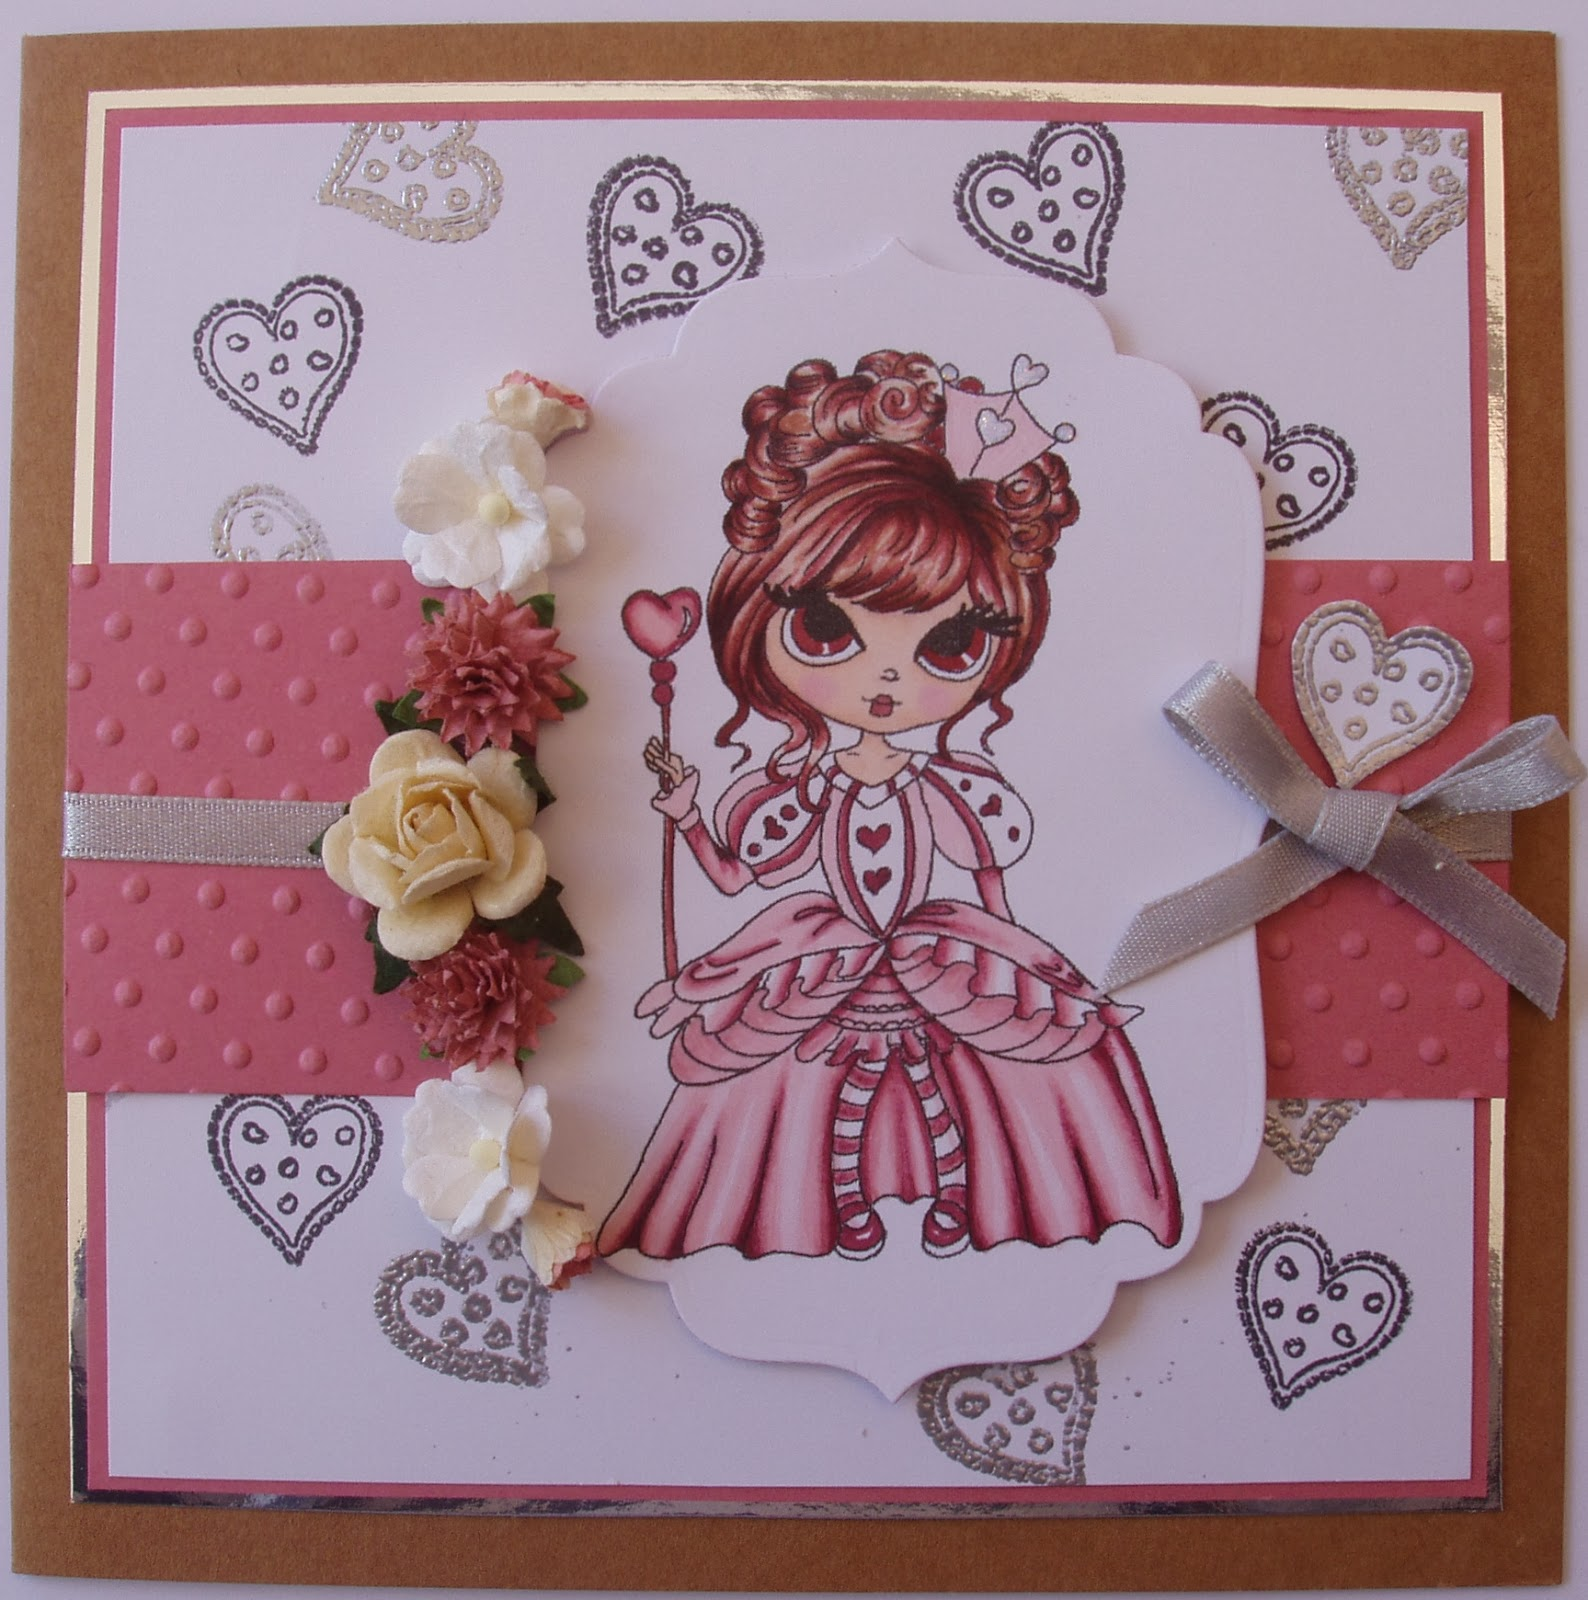 http://flossbites-cardmaking.blogspot.com/2013/08/queen-of-hearts.html